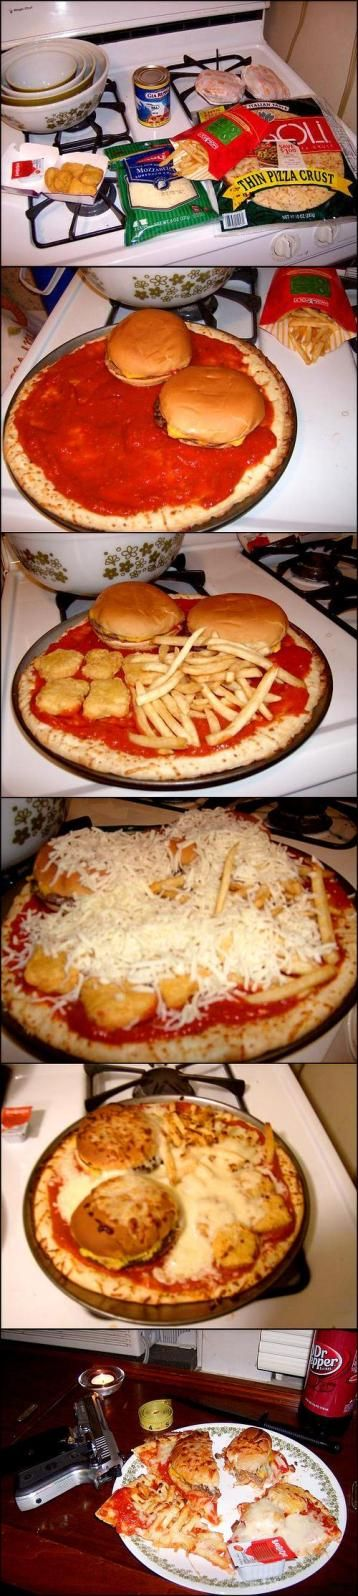 This Called Pizza Burger